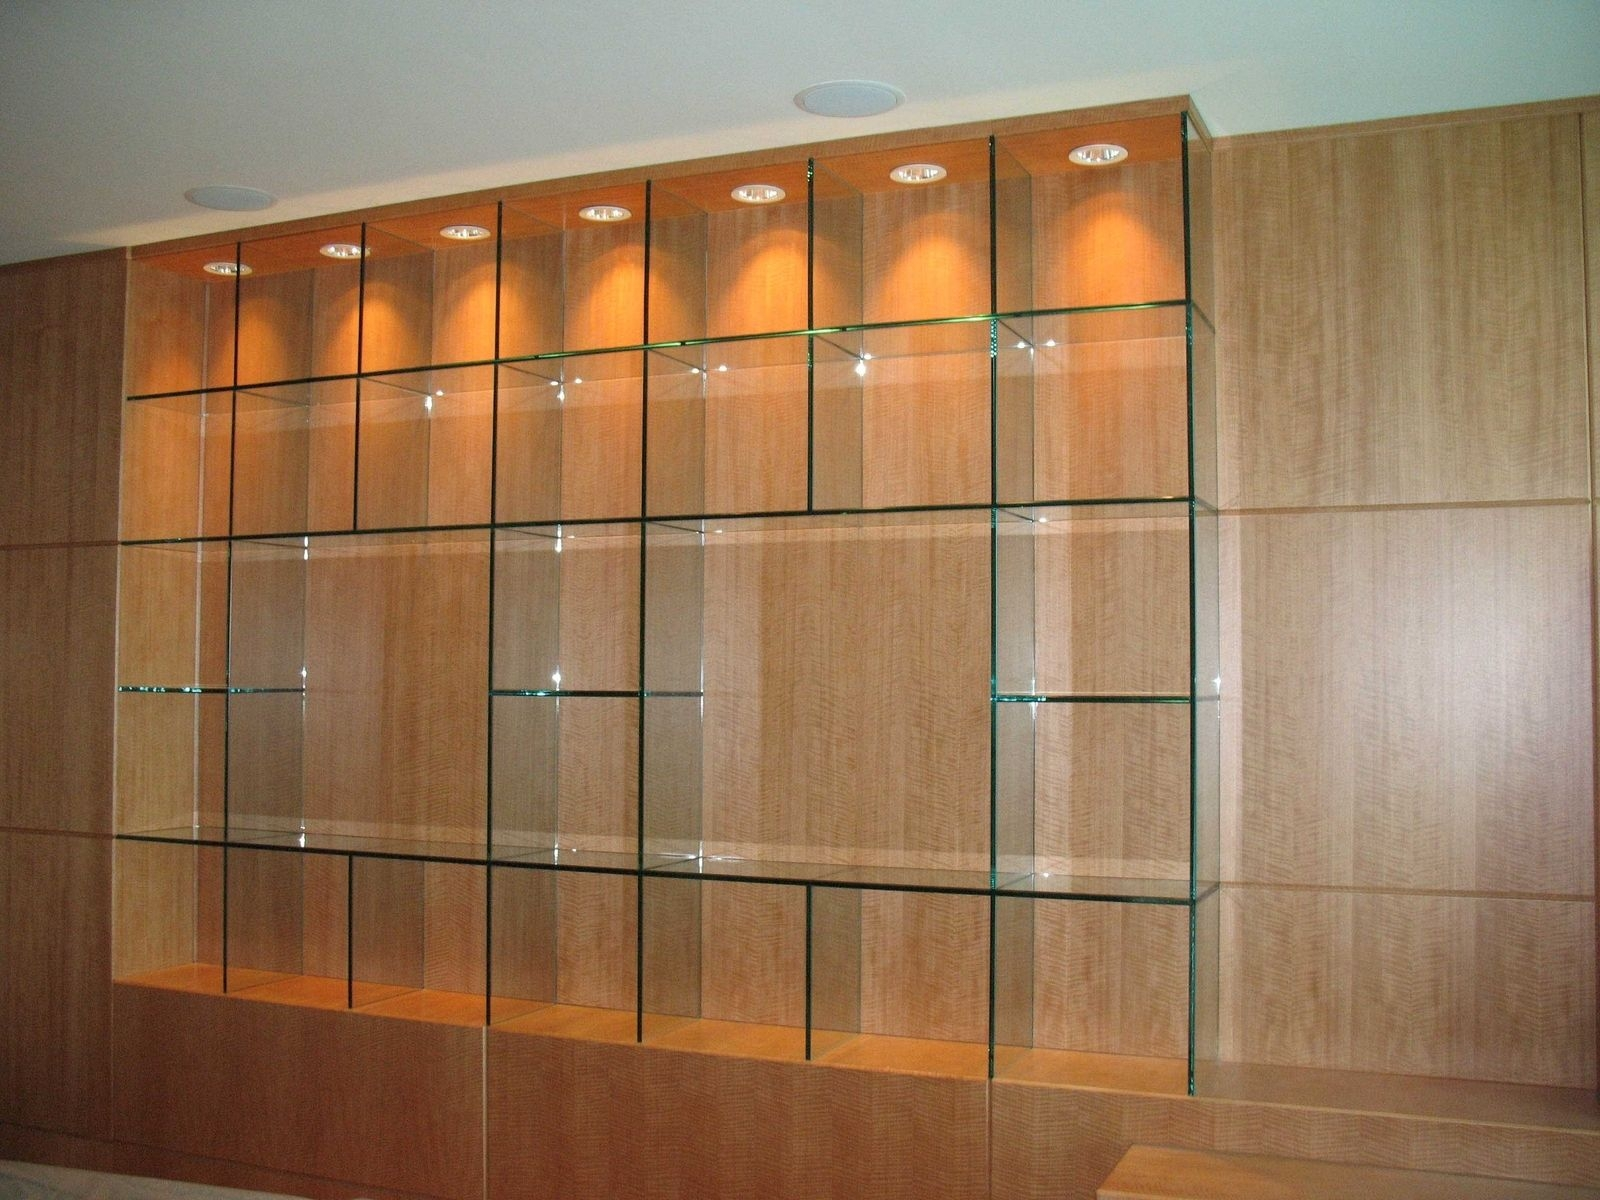 Handmade Glass Shelves Knock On Glass Custommade Pertaining To Glass Shelves (Image 8 of 15)